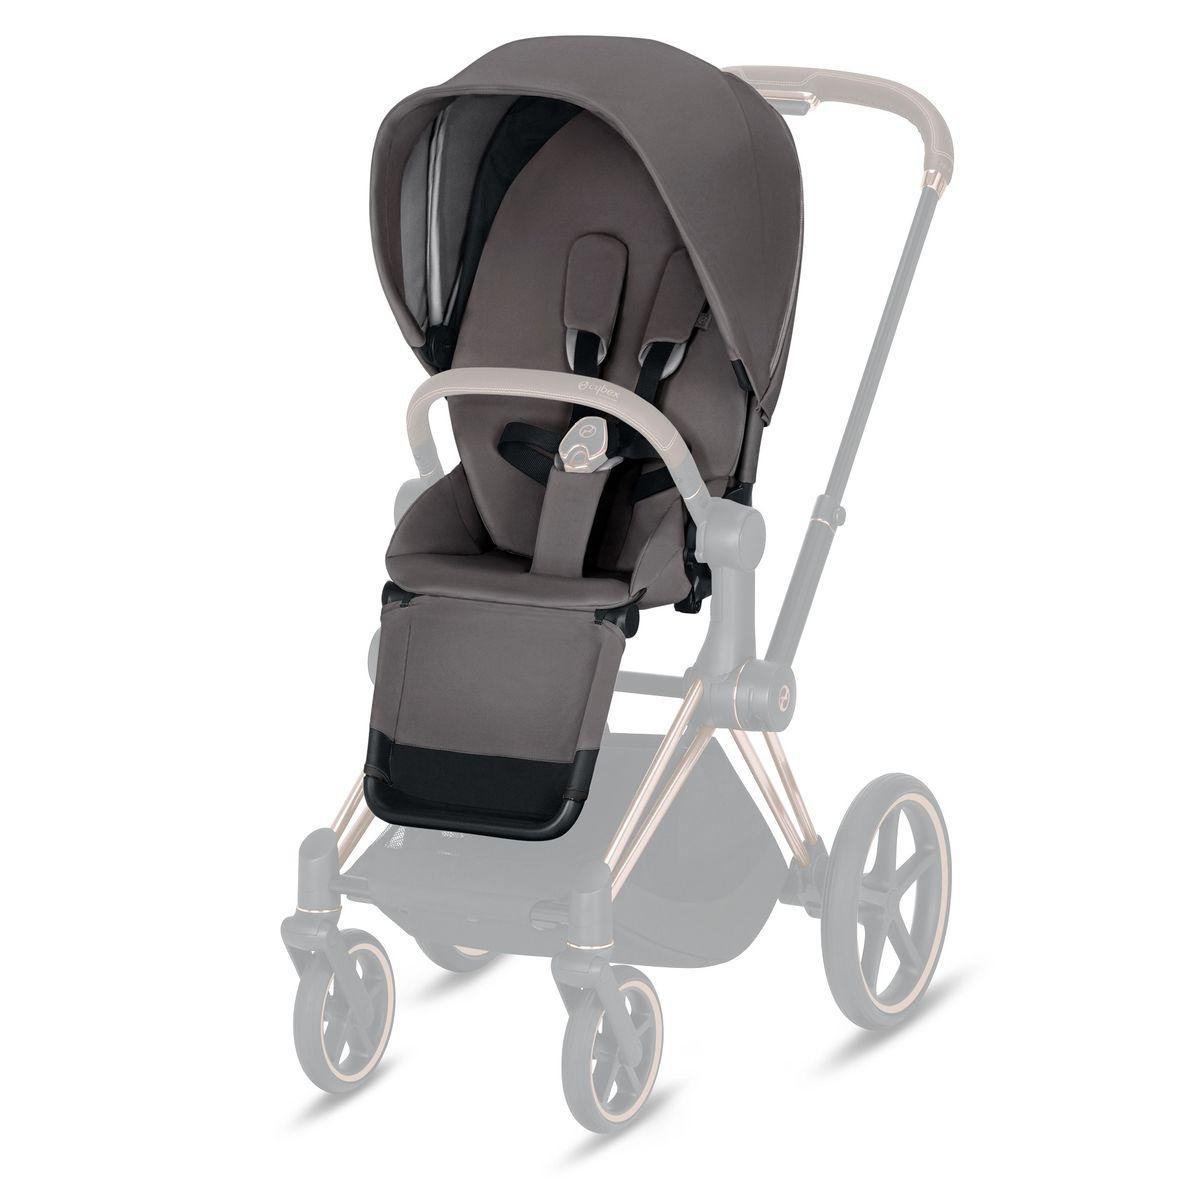 Assise-habillage poussette PRIAM Cybex manhattan grey-mid grey